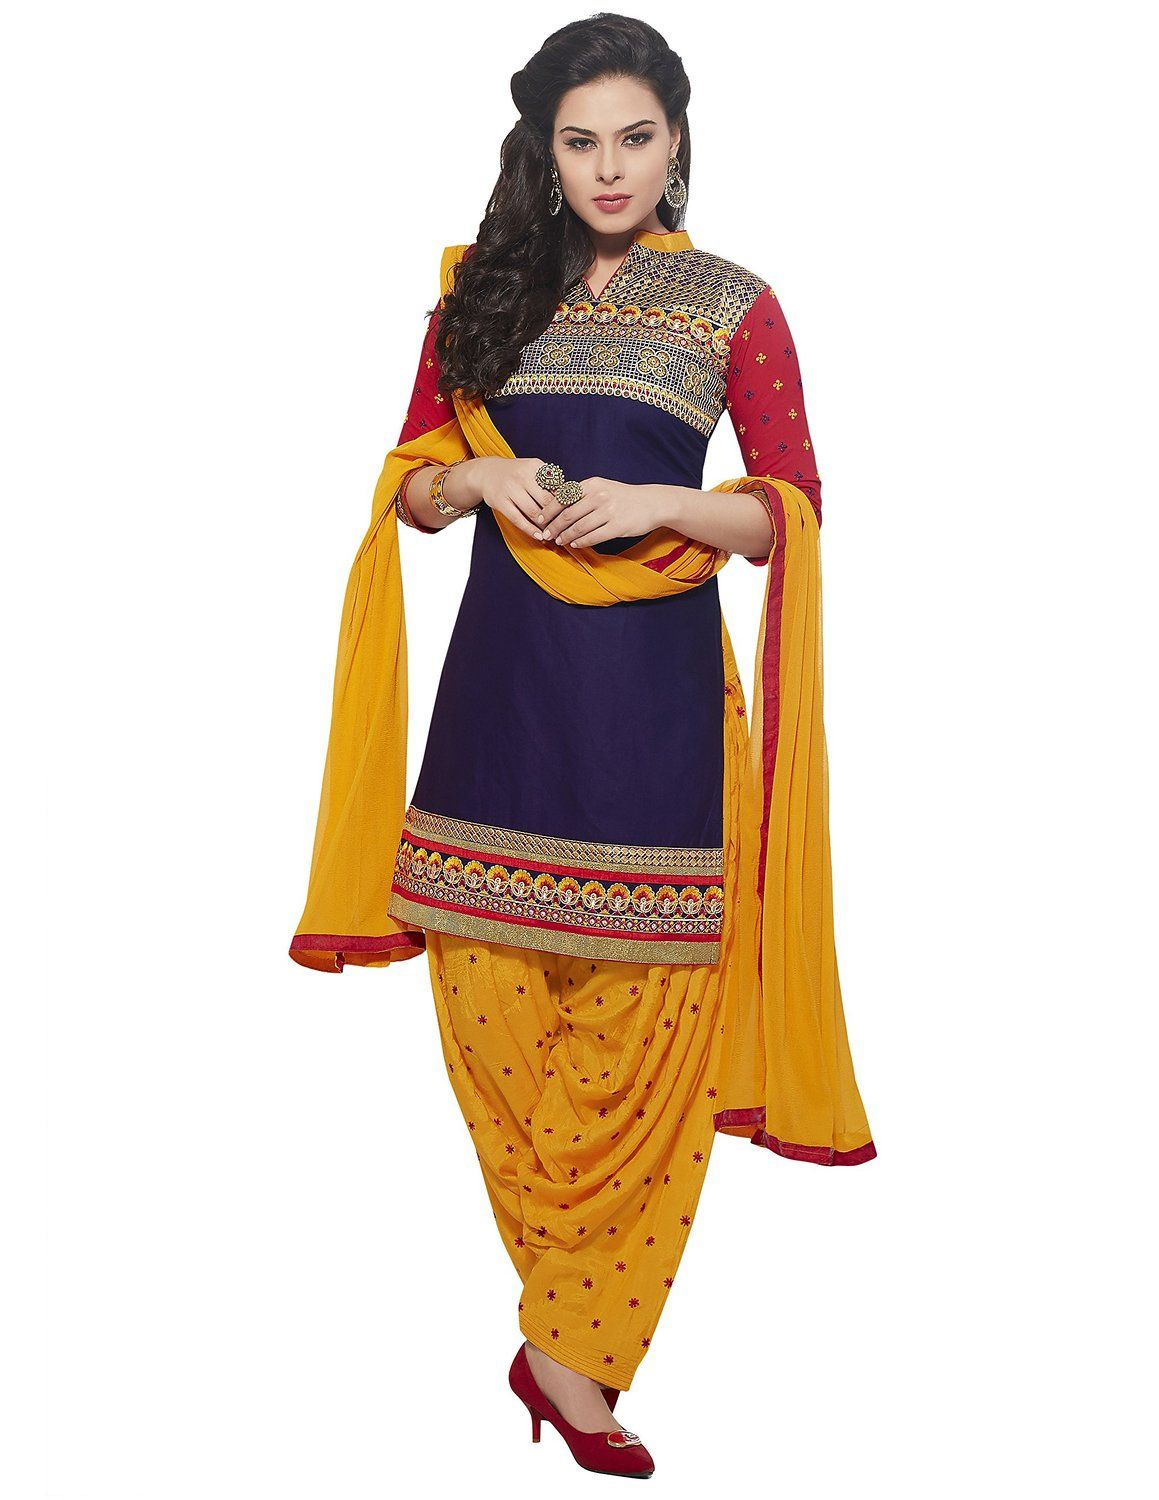 75257be759 Jaybhavanifashion Women Cotton Dress Material (C-Kessi-5351 _Purple _Free  Size): Amazon.in: Clothing & Accessories,Designer Patiala Suits,Embroidery  Dress ...